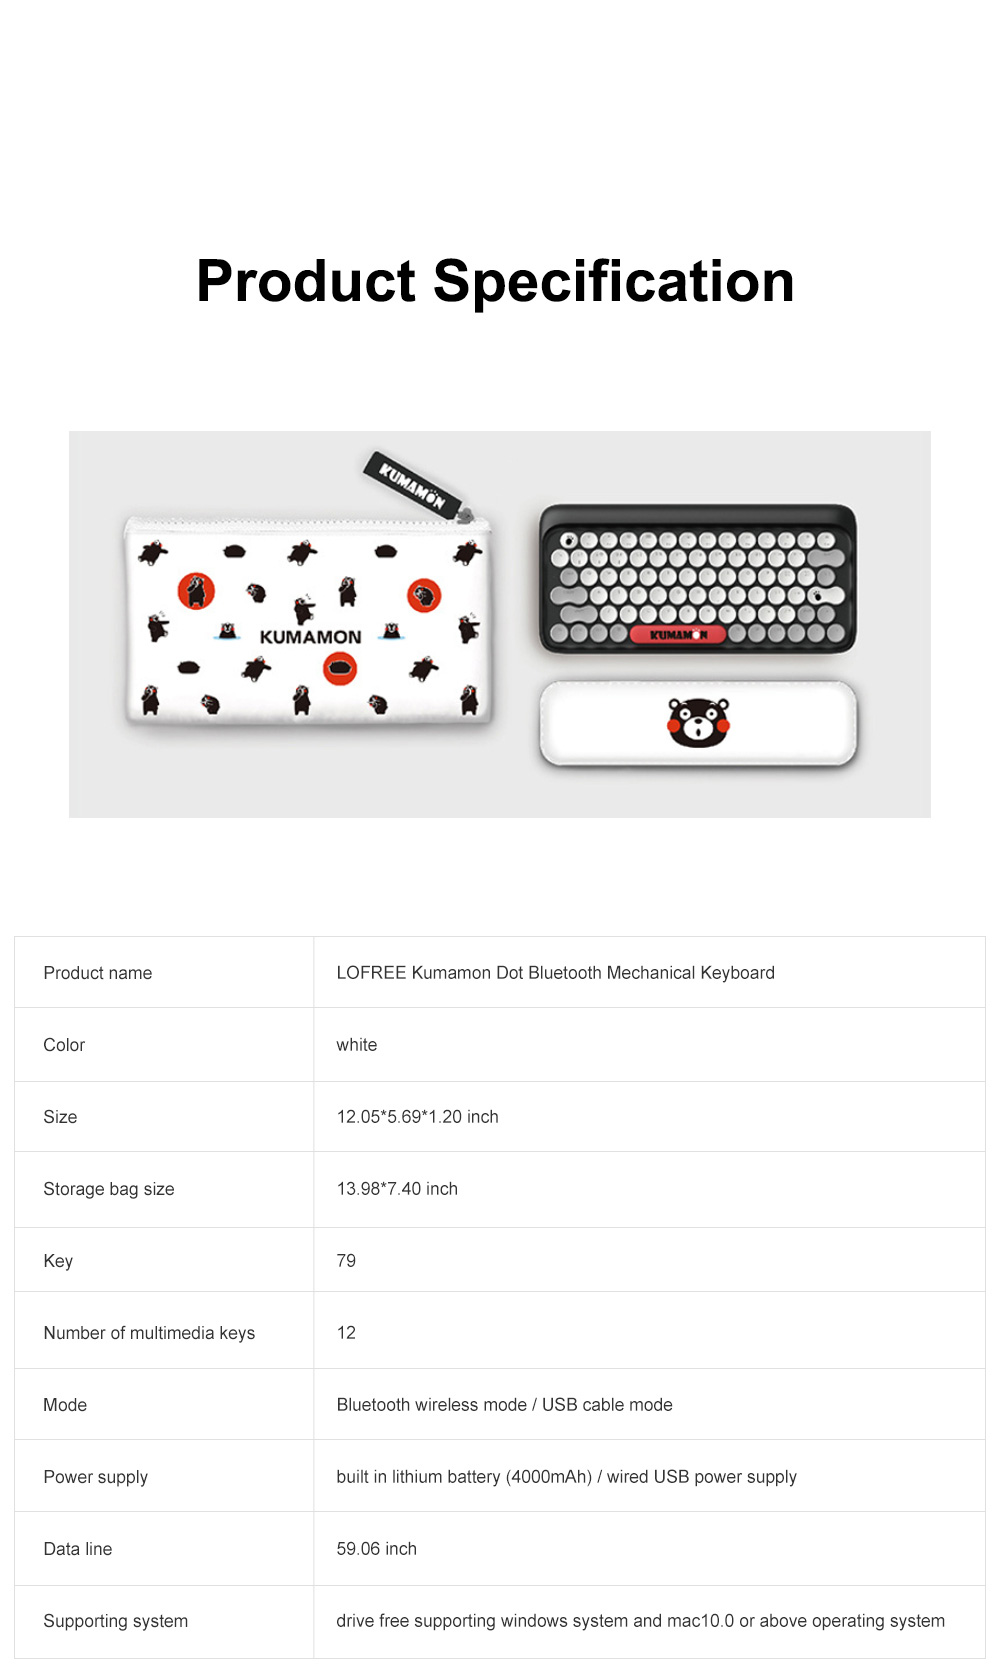 LOFREE Kumamon Dot Bluetooth Mechanical Keyboard Laptop Tablet IPAD Wireless Retro Keyboard 7